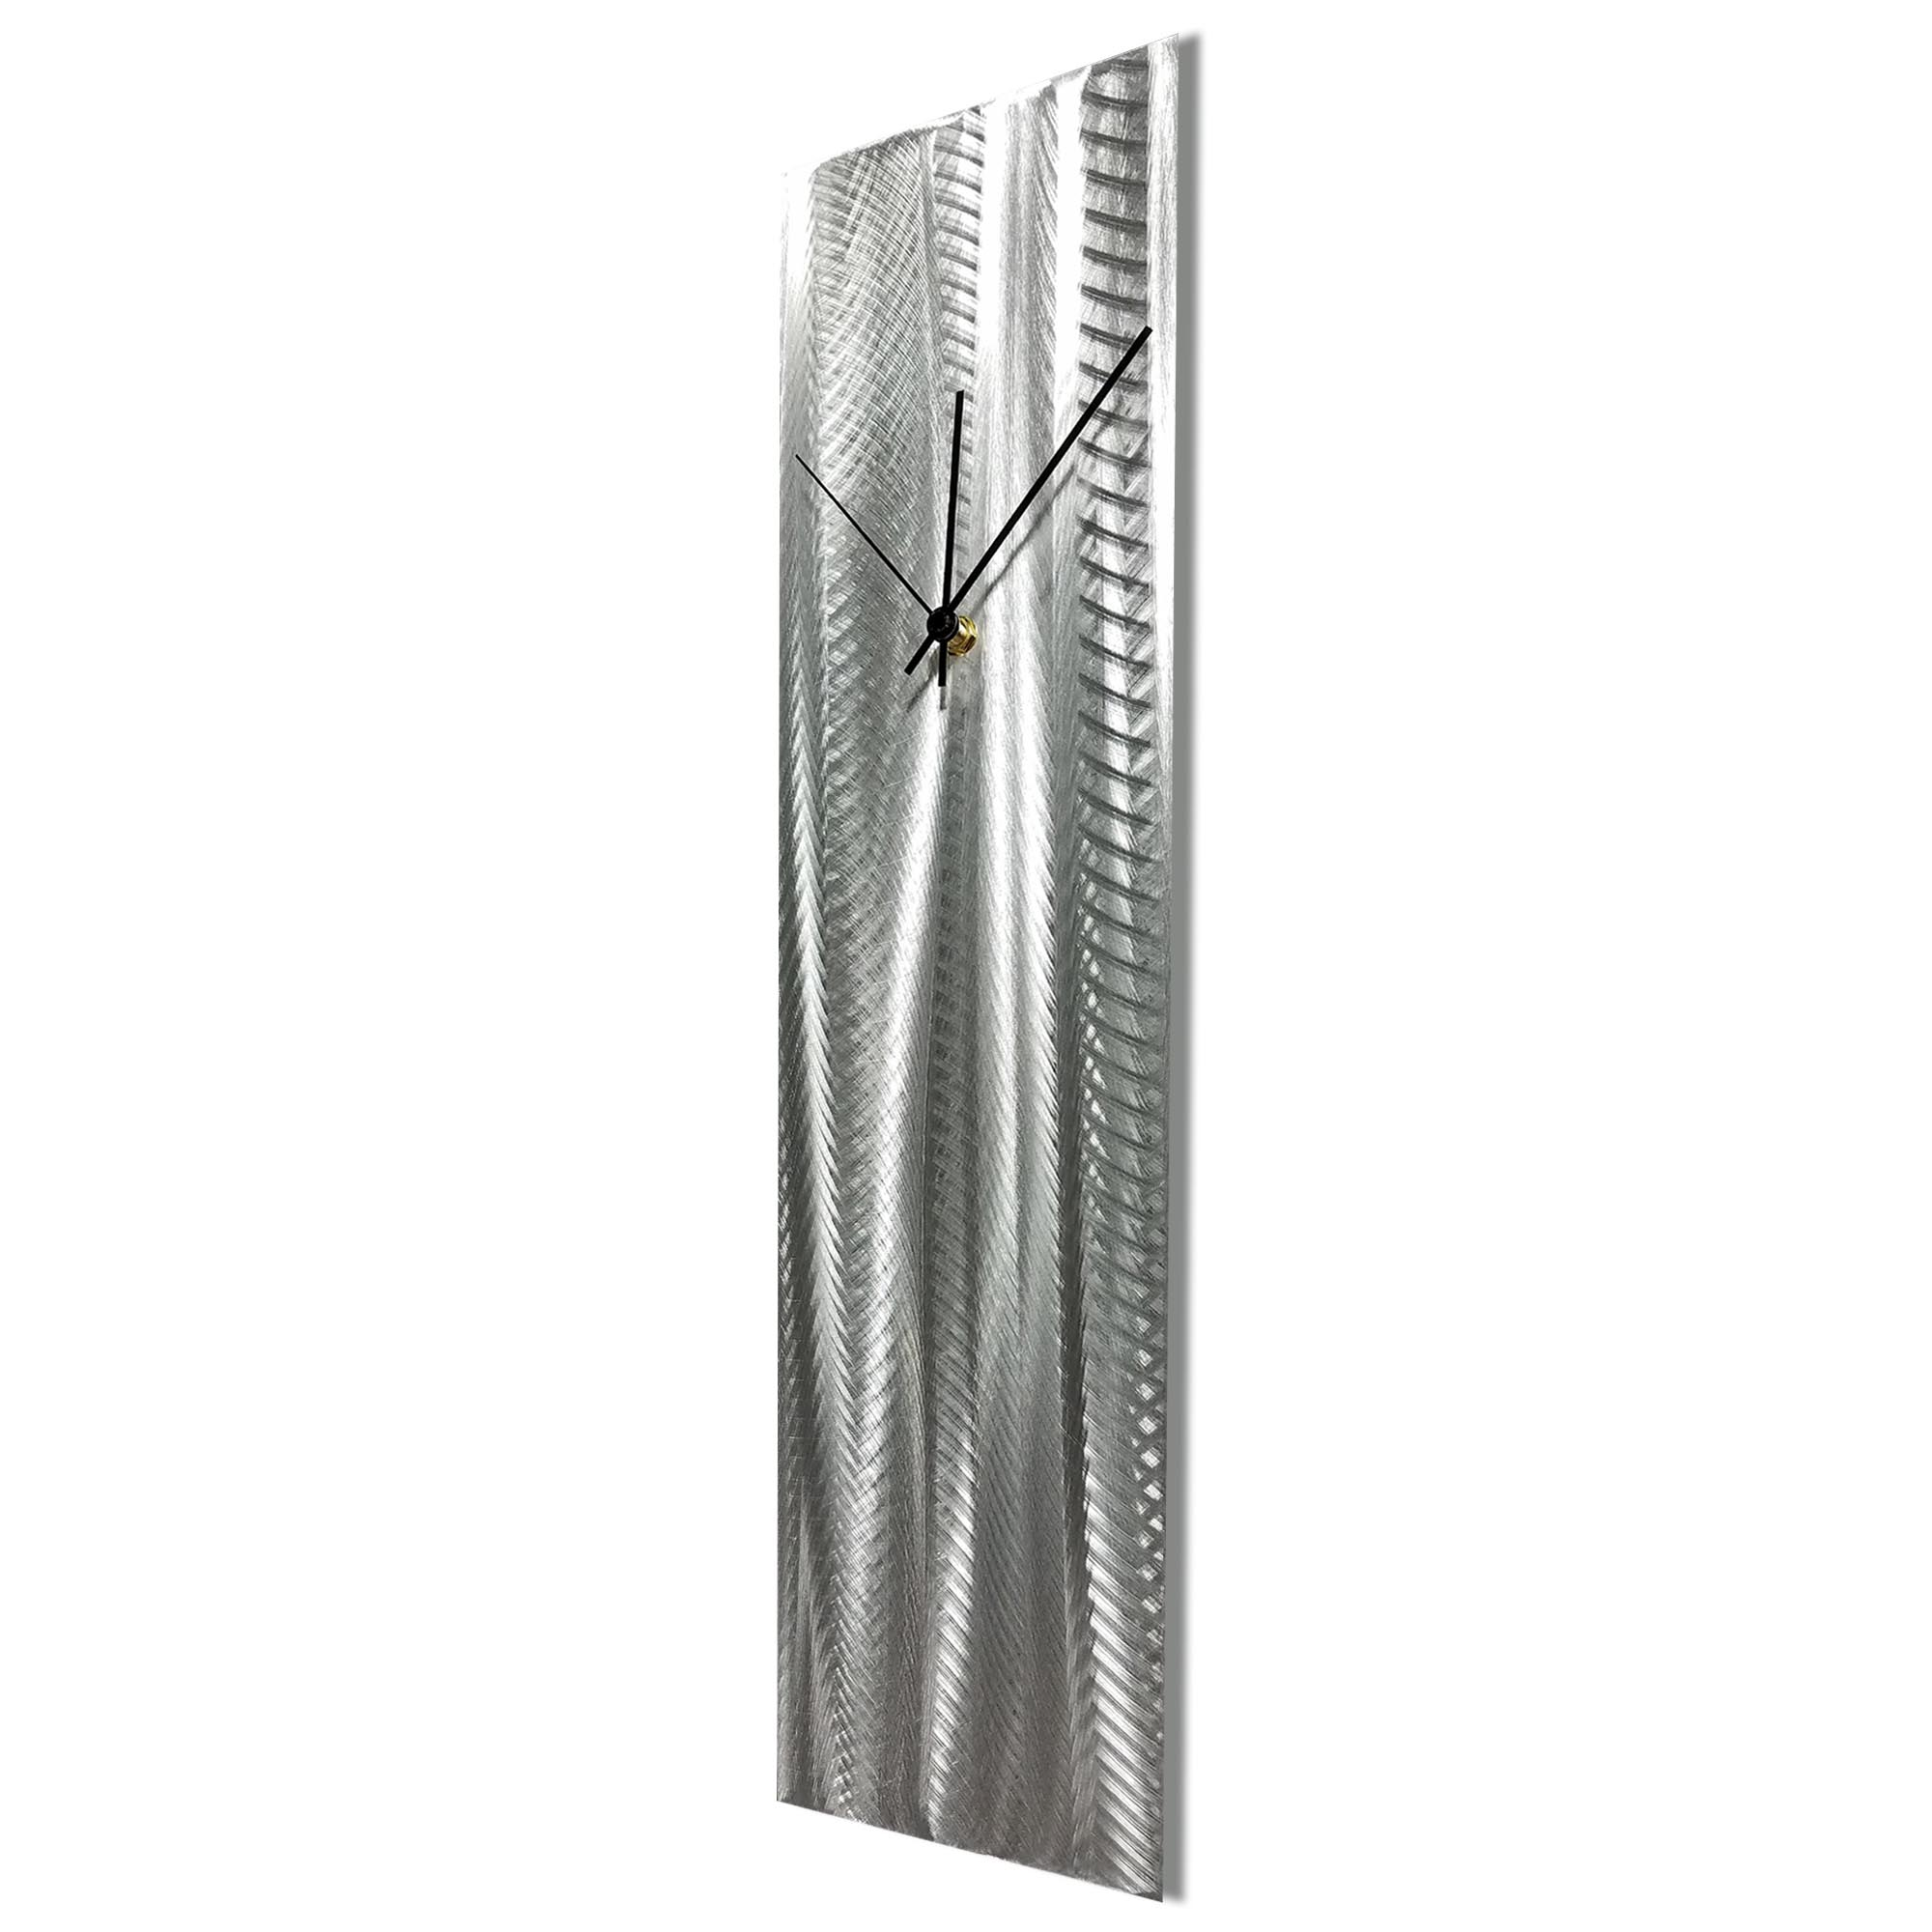 Silver Lines Clock by Helena Martin Contemporary Wall Clock on Natural Aluminum - Image 2